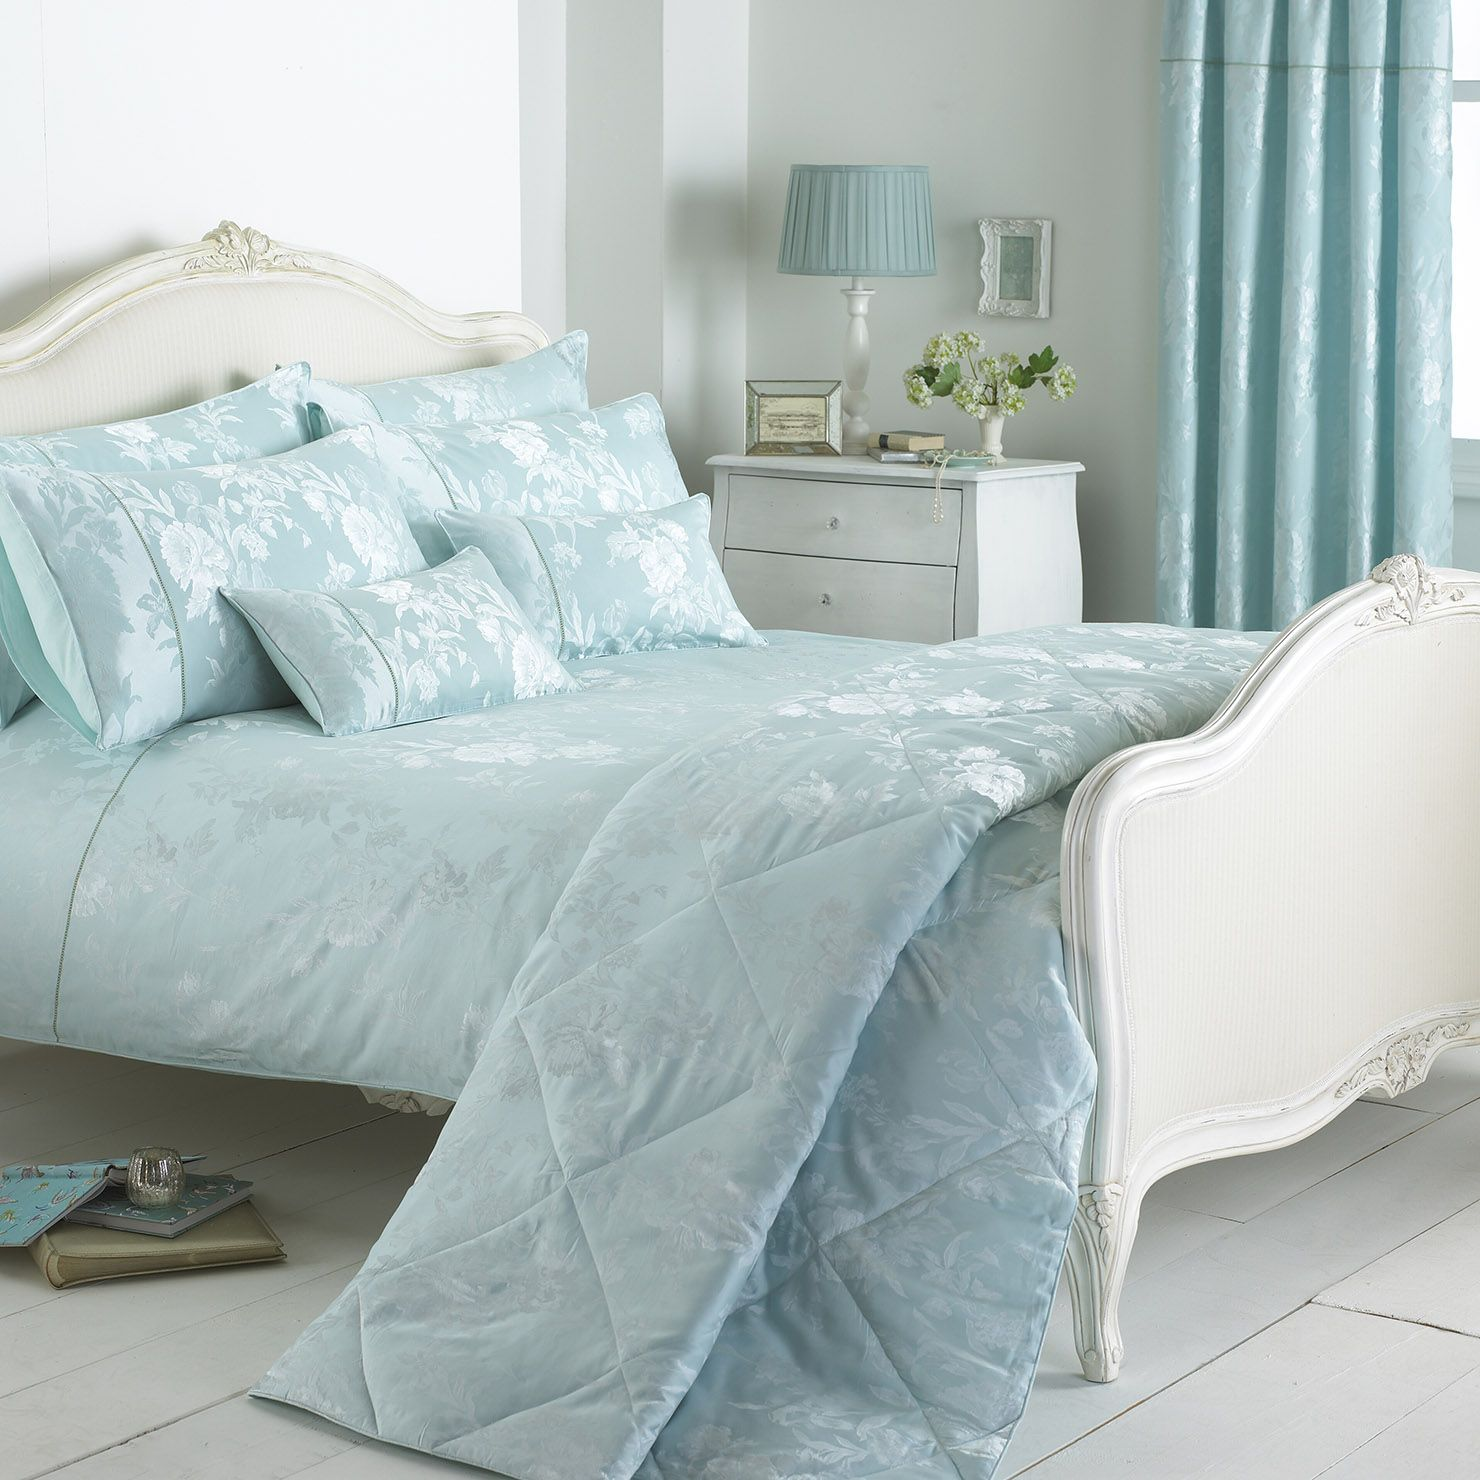 Bedspread Duck Egg Blue: Paoletti Balmoral Double Duvet Cover Set, Duck